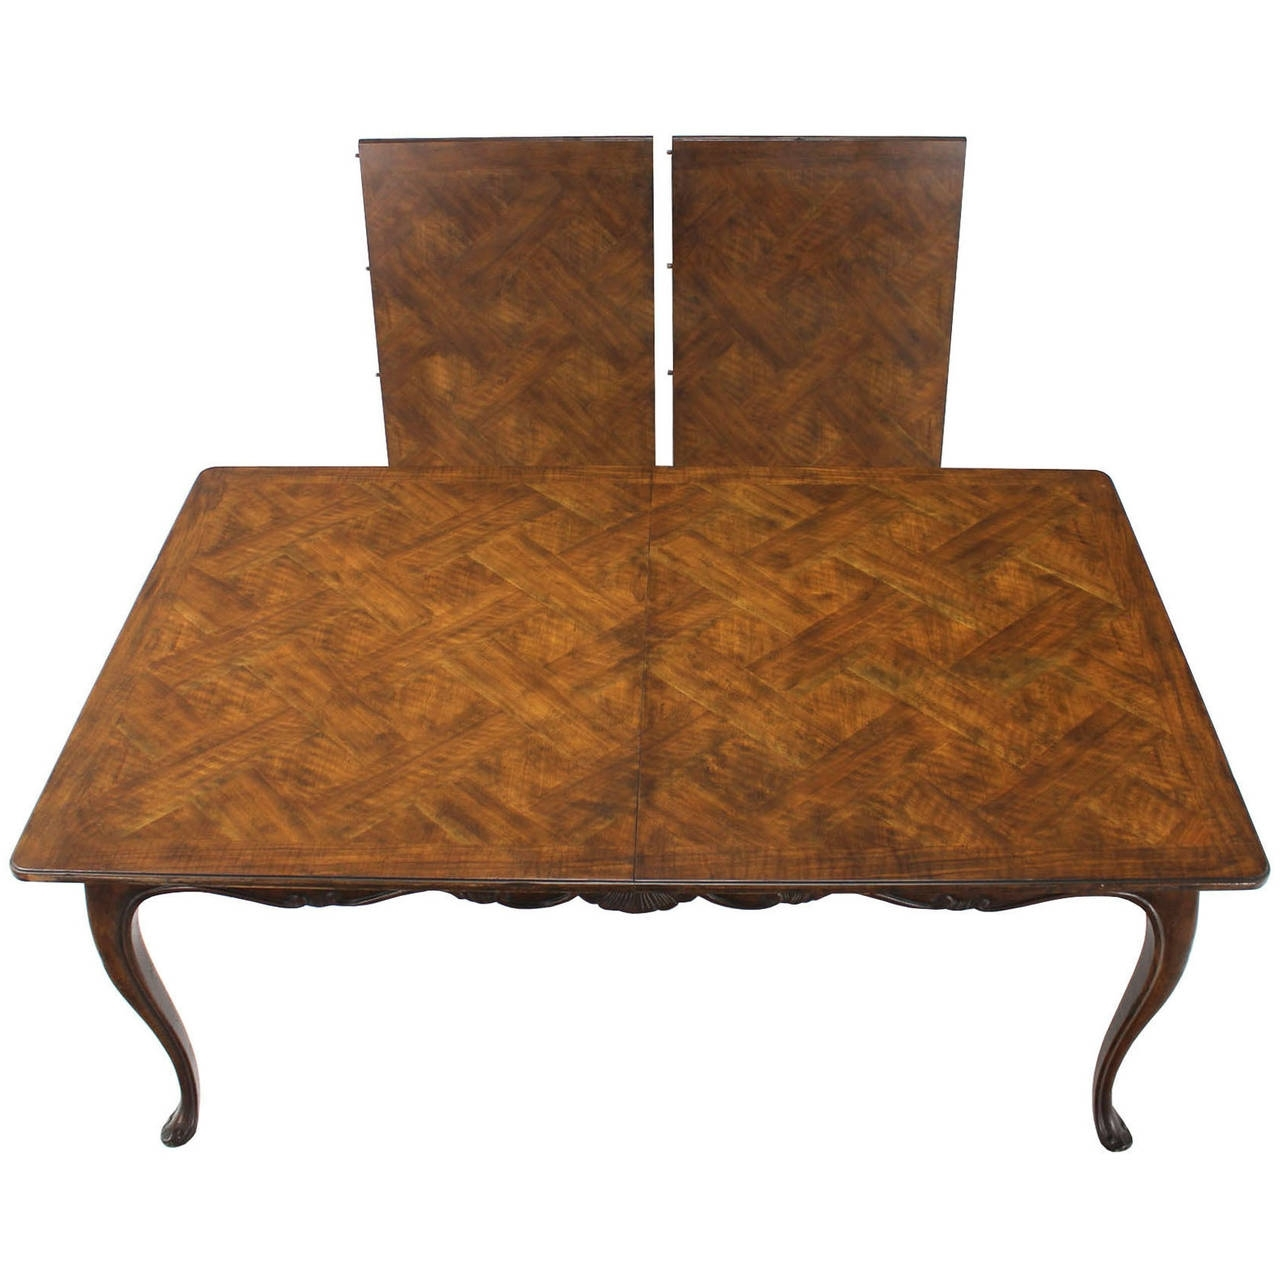 Most Popular Burwood Walnut Dining Tableheritage W/ One Extension Leaf Inside Parquet Dining Chairs (View 11 of 20)